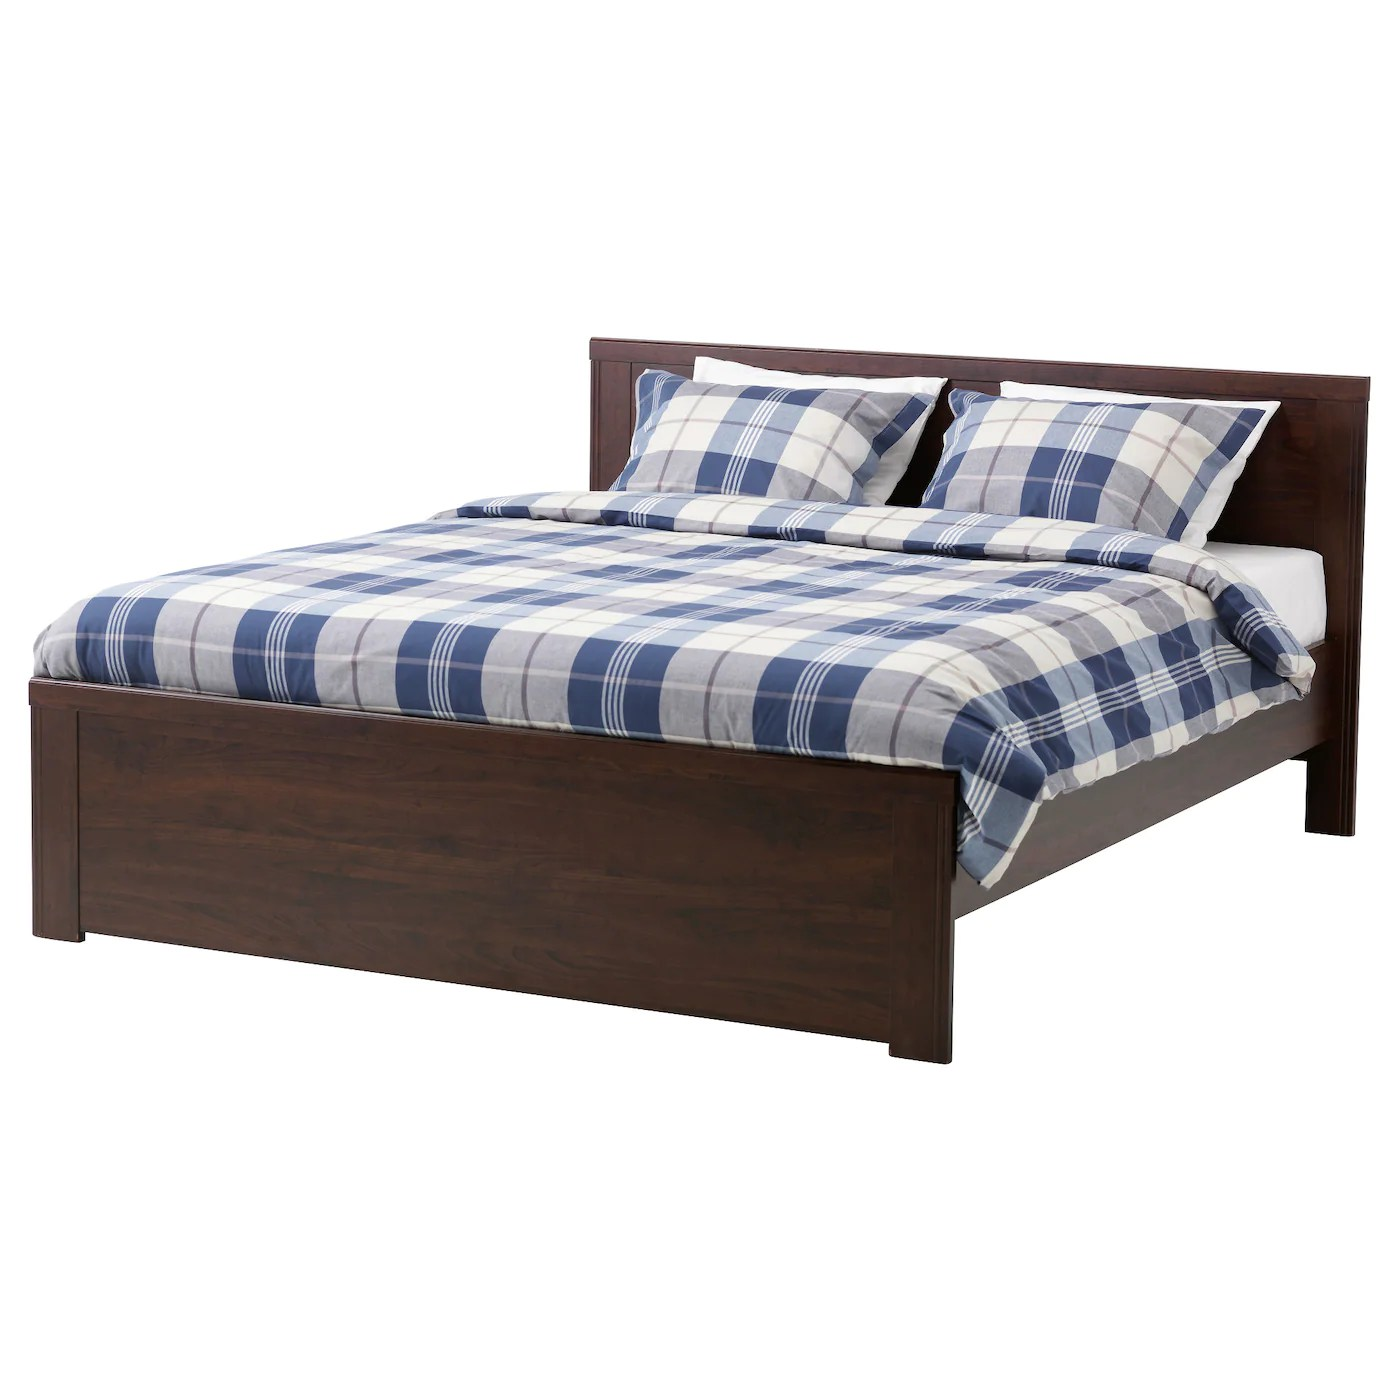 Brusali Bed Frame Brown Luroy Standard Double